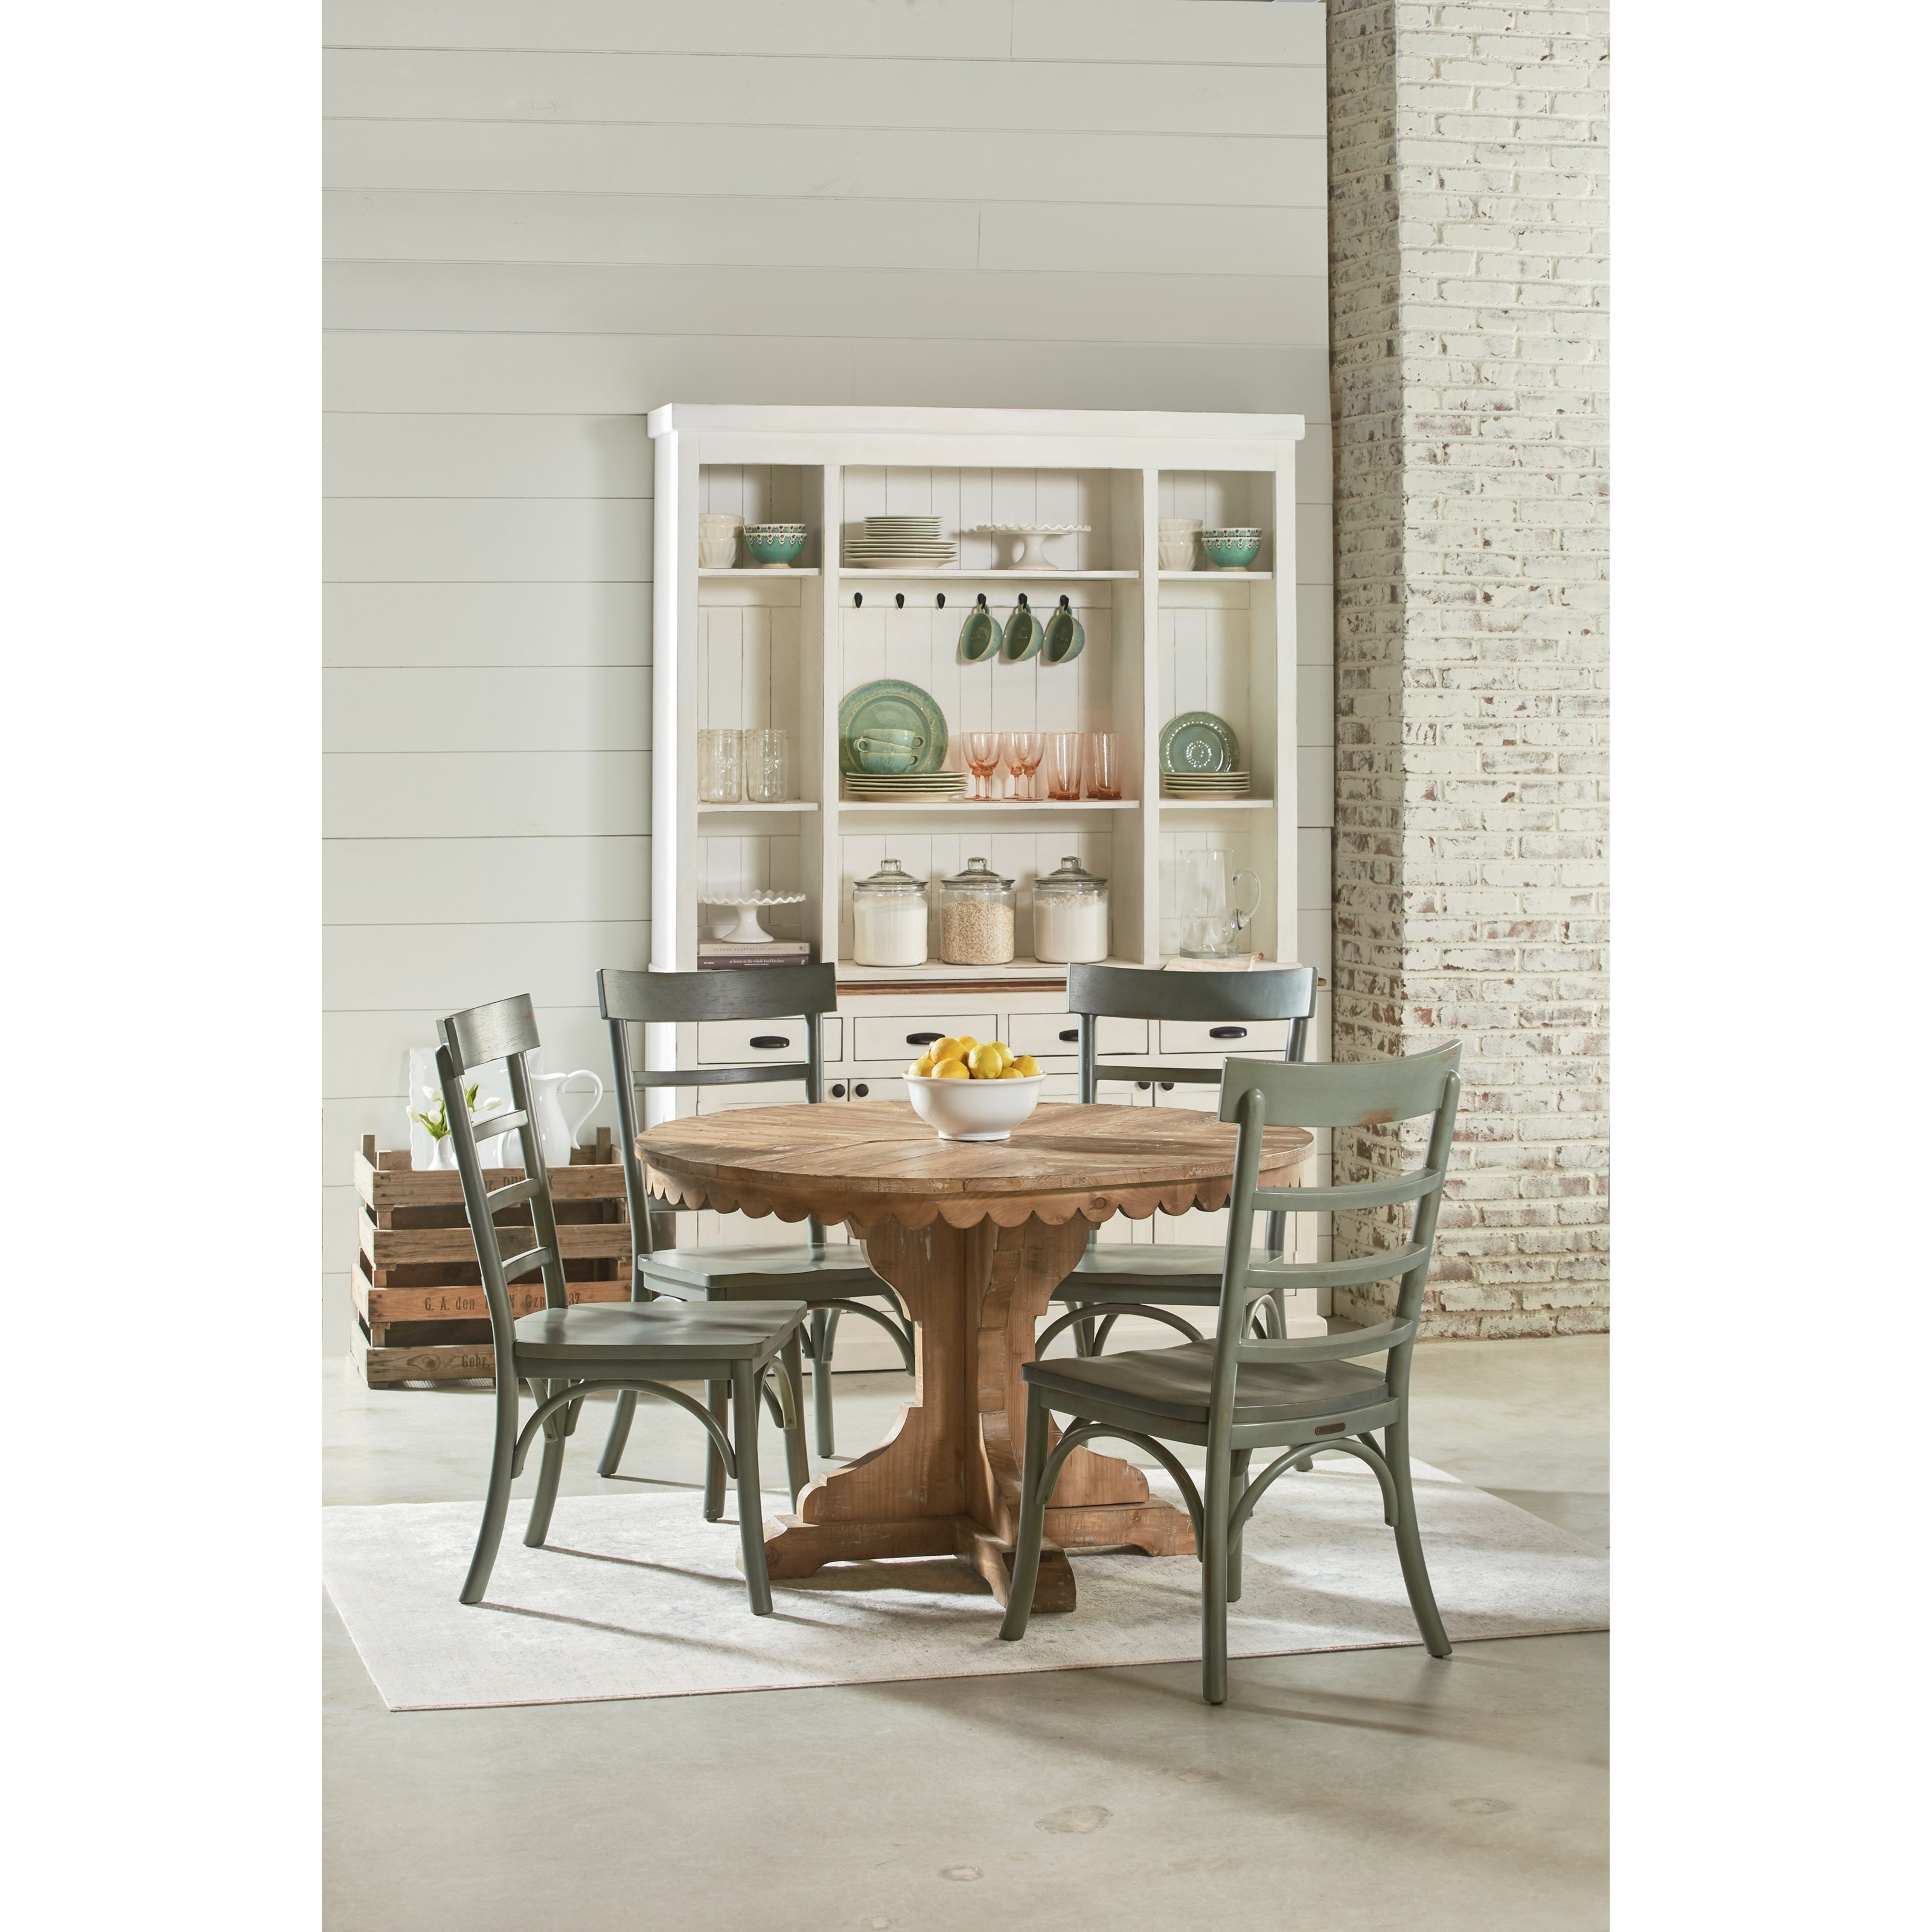 two tone baker u0027s pantry by magnolia home by joanna gaines wolf